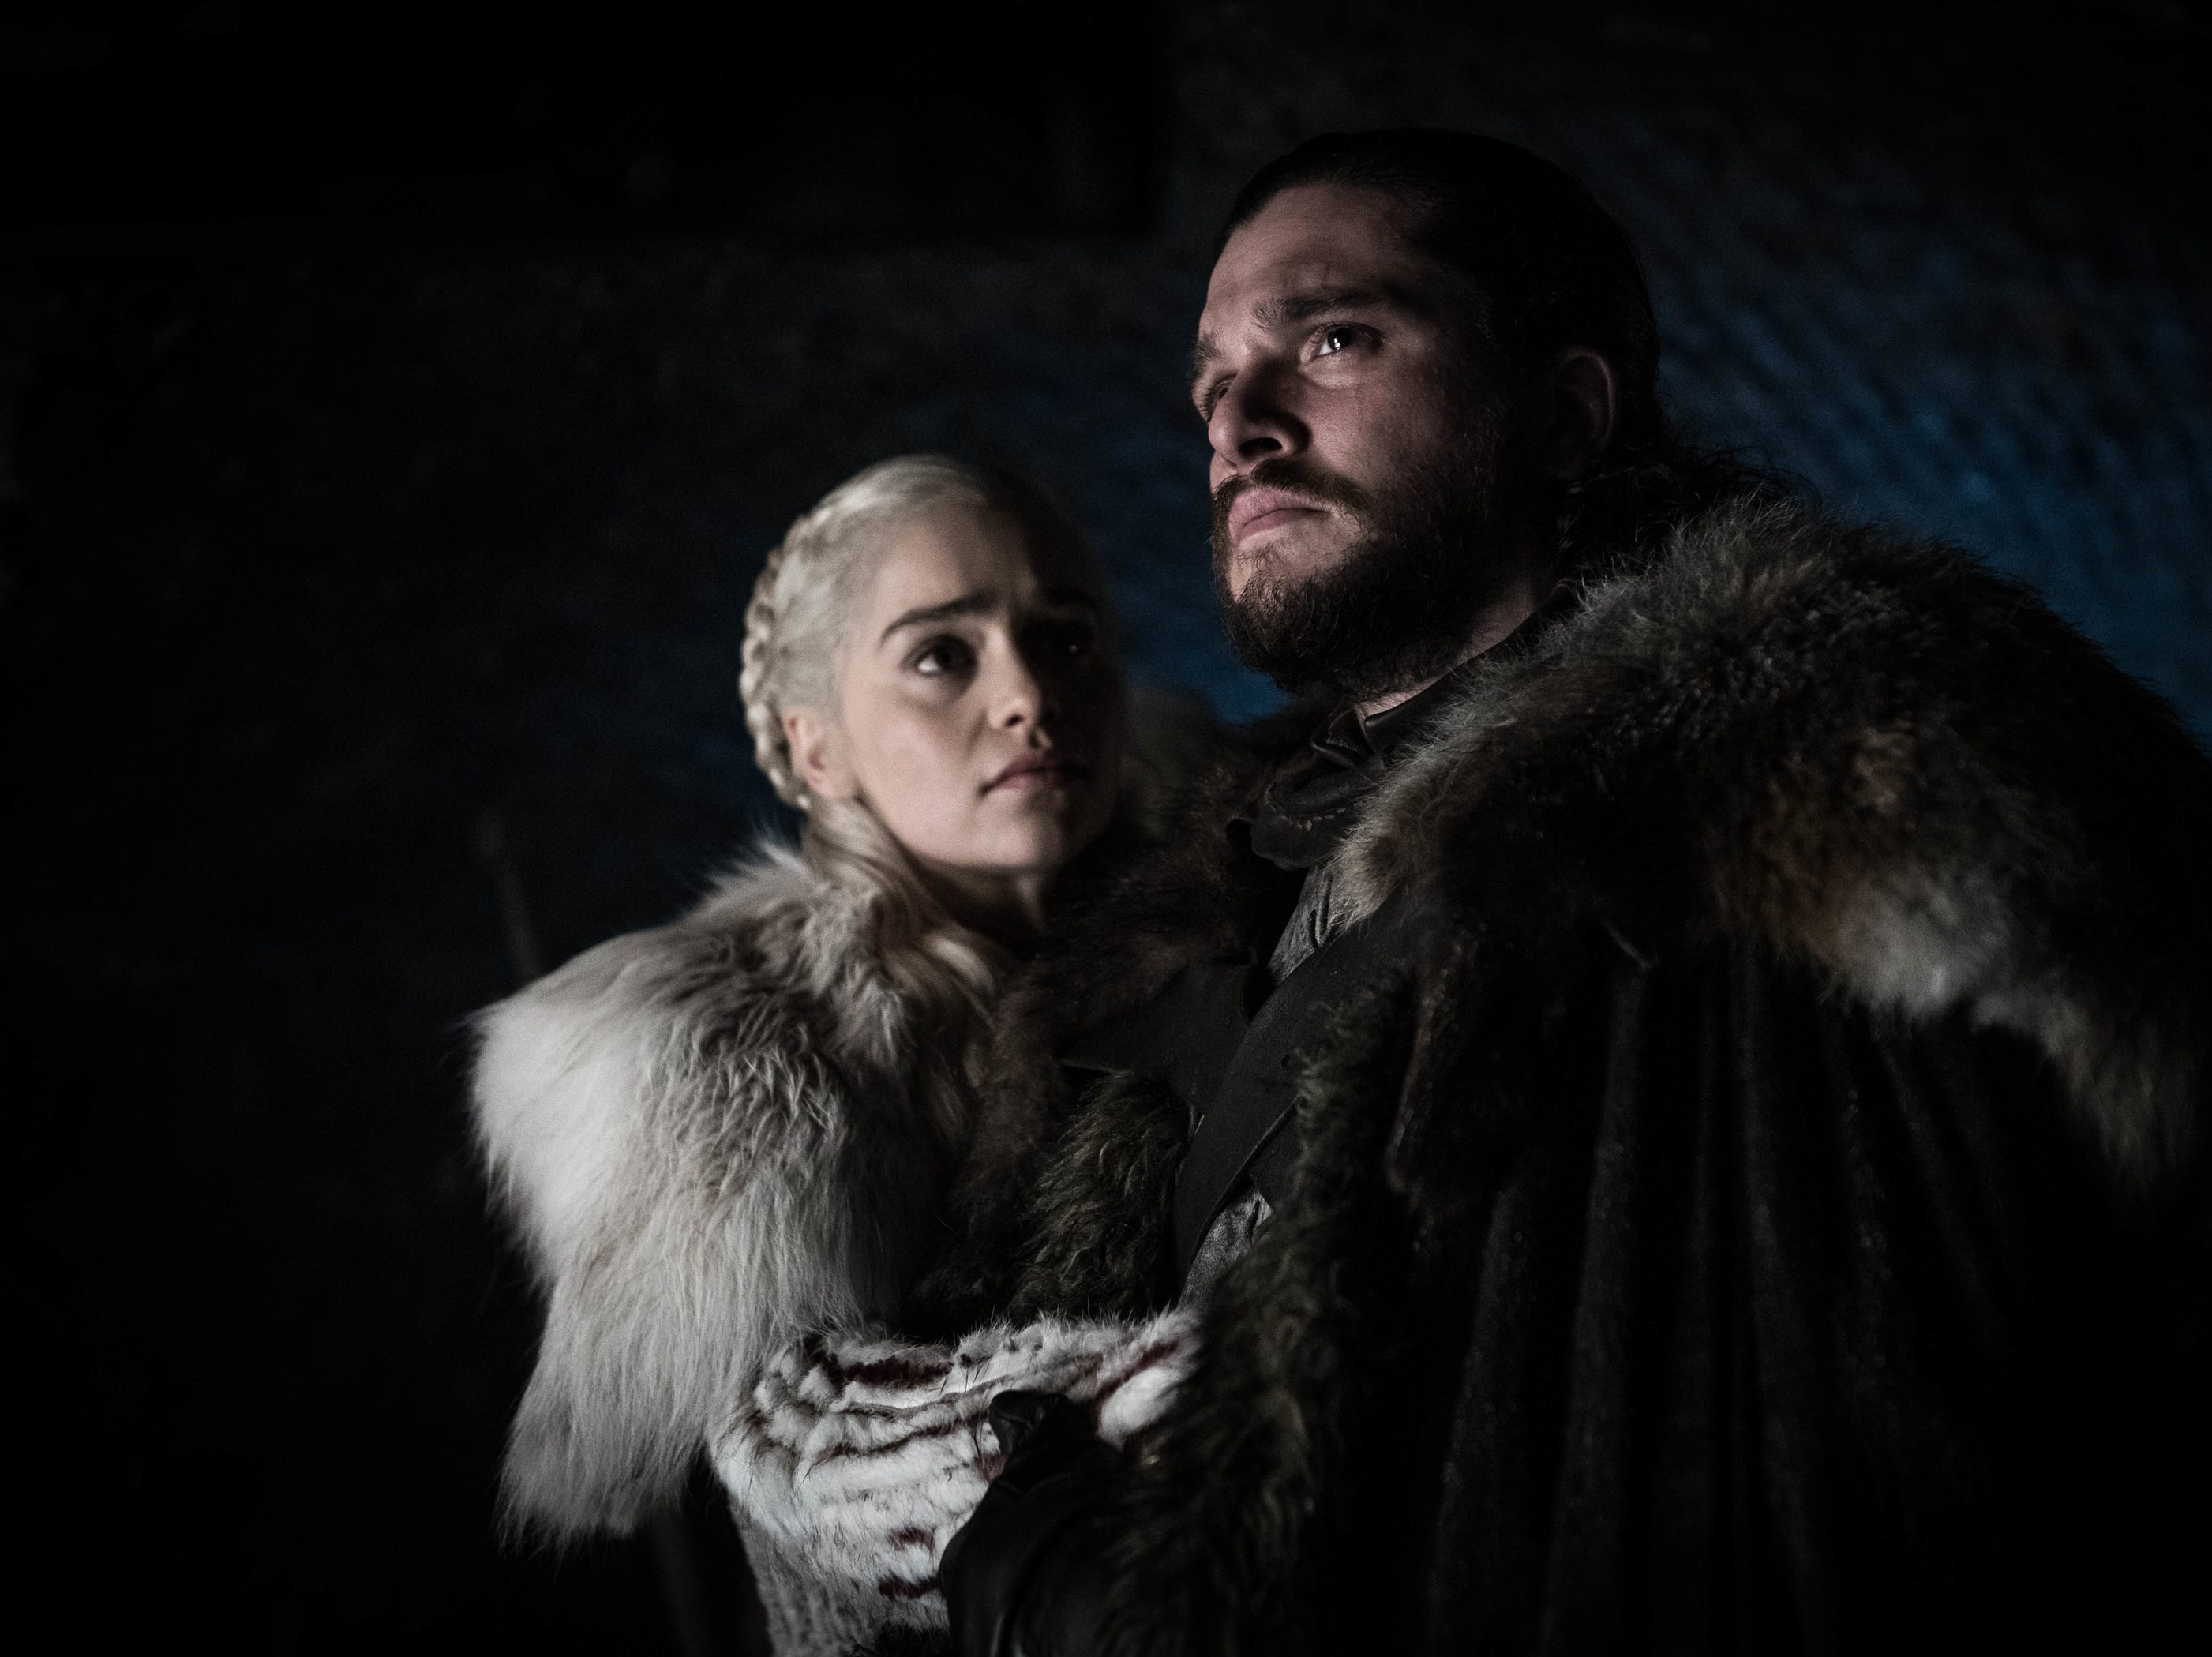 Emilia Clarke as Daenerys Targaryen, left, and Kit Harington as Jon Snow in 'Game of Thrones.'